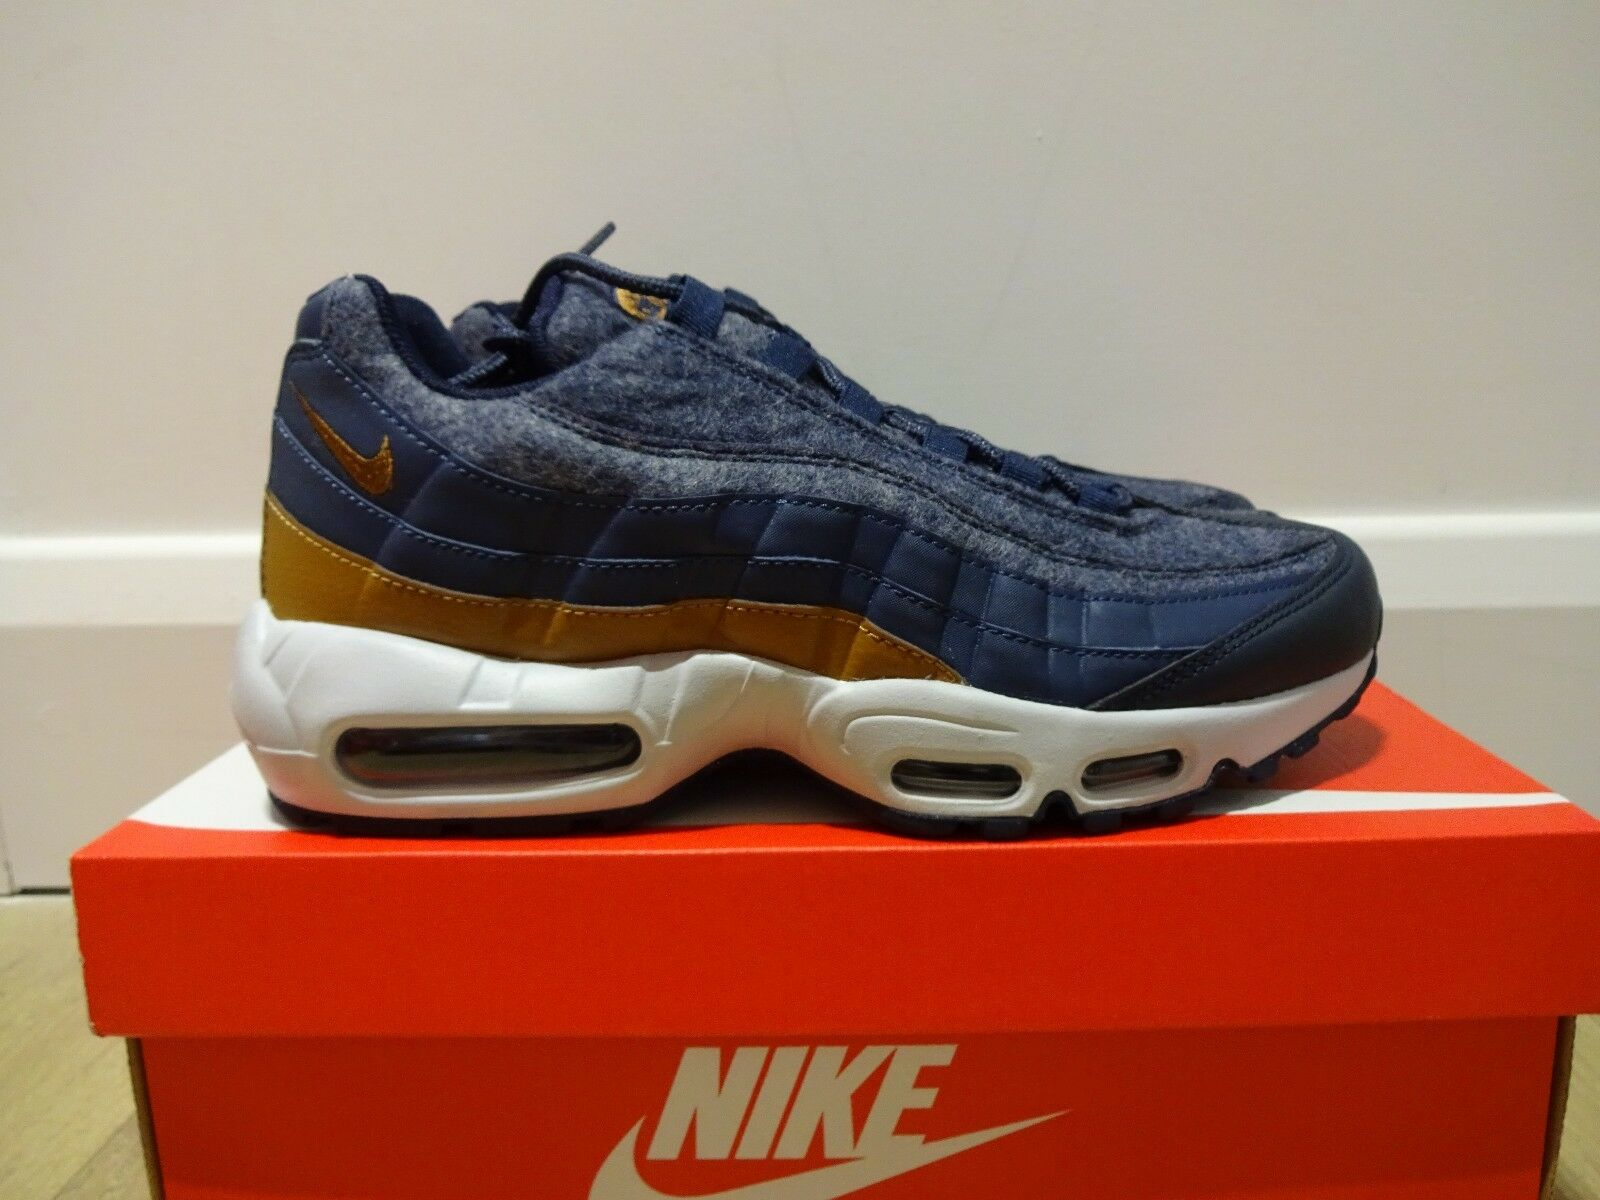 NIKE AIR MAX 95 PRM - THUNDER Bleu / ALE BROWN BNIB VARIOUS TailleS 538416 403